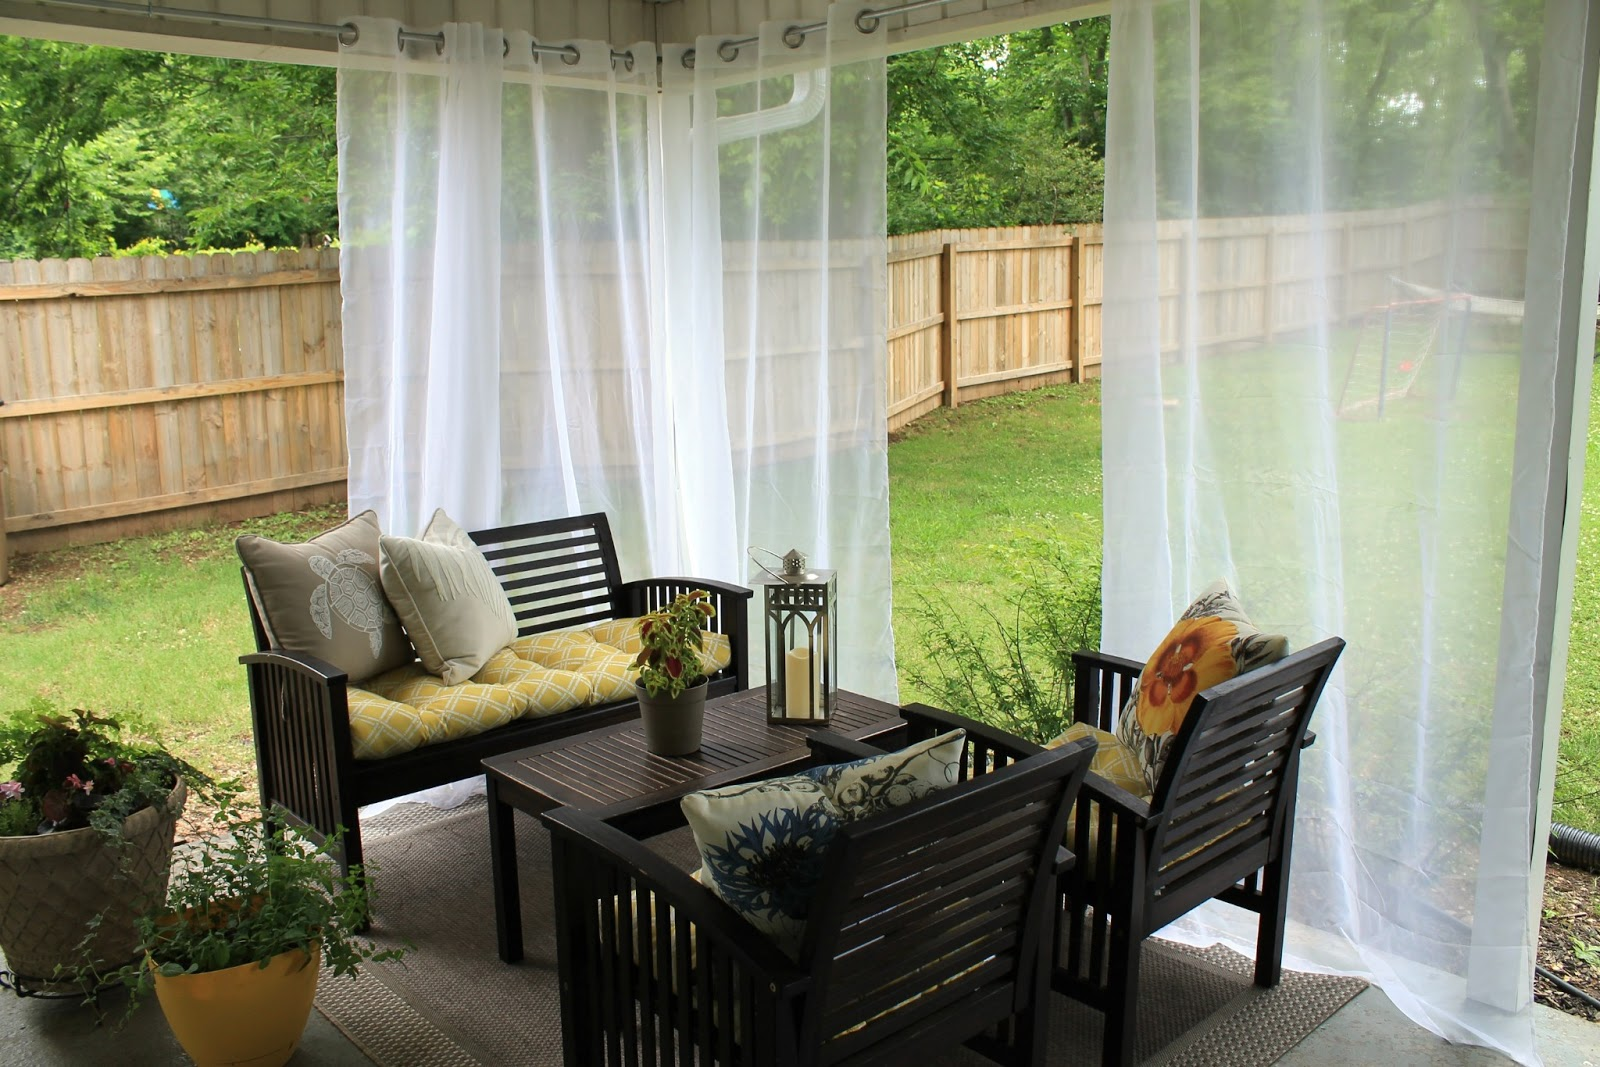 Charming Outdoor Curtains Part - 11: Outdoor-curtains-diy-outdoor-curtains-modern-home-design